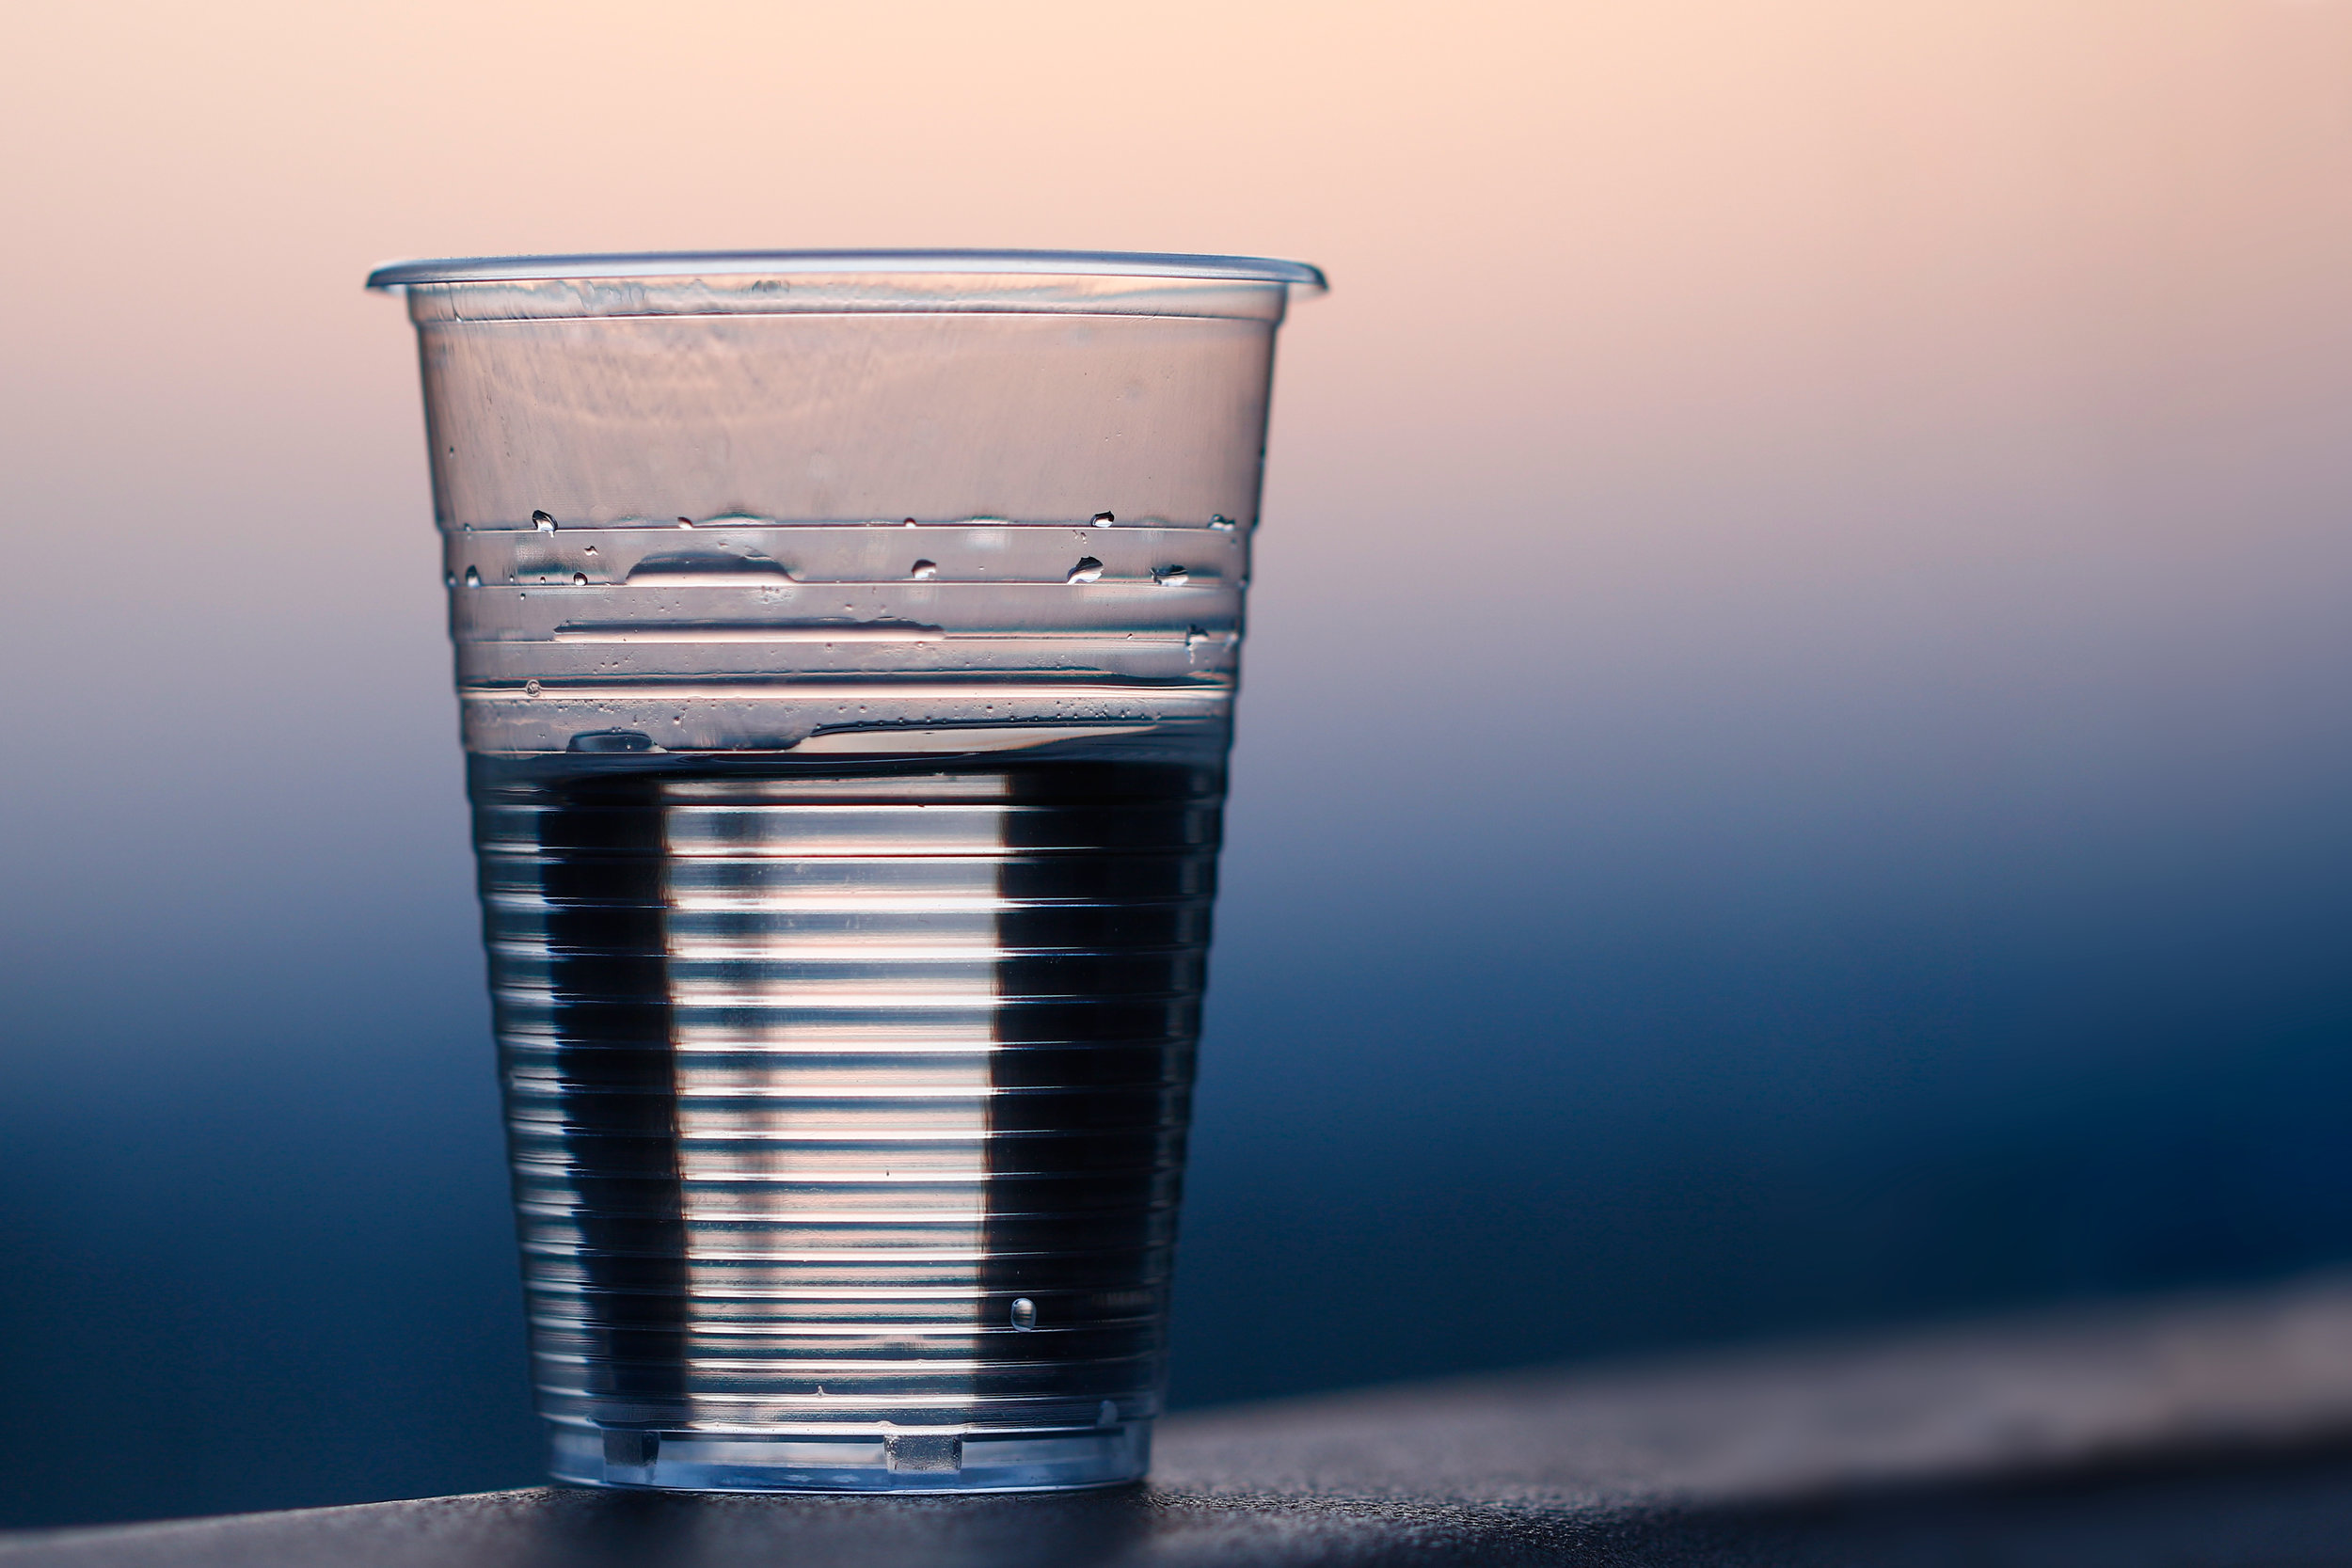 Increase water intake to reduce belly fat